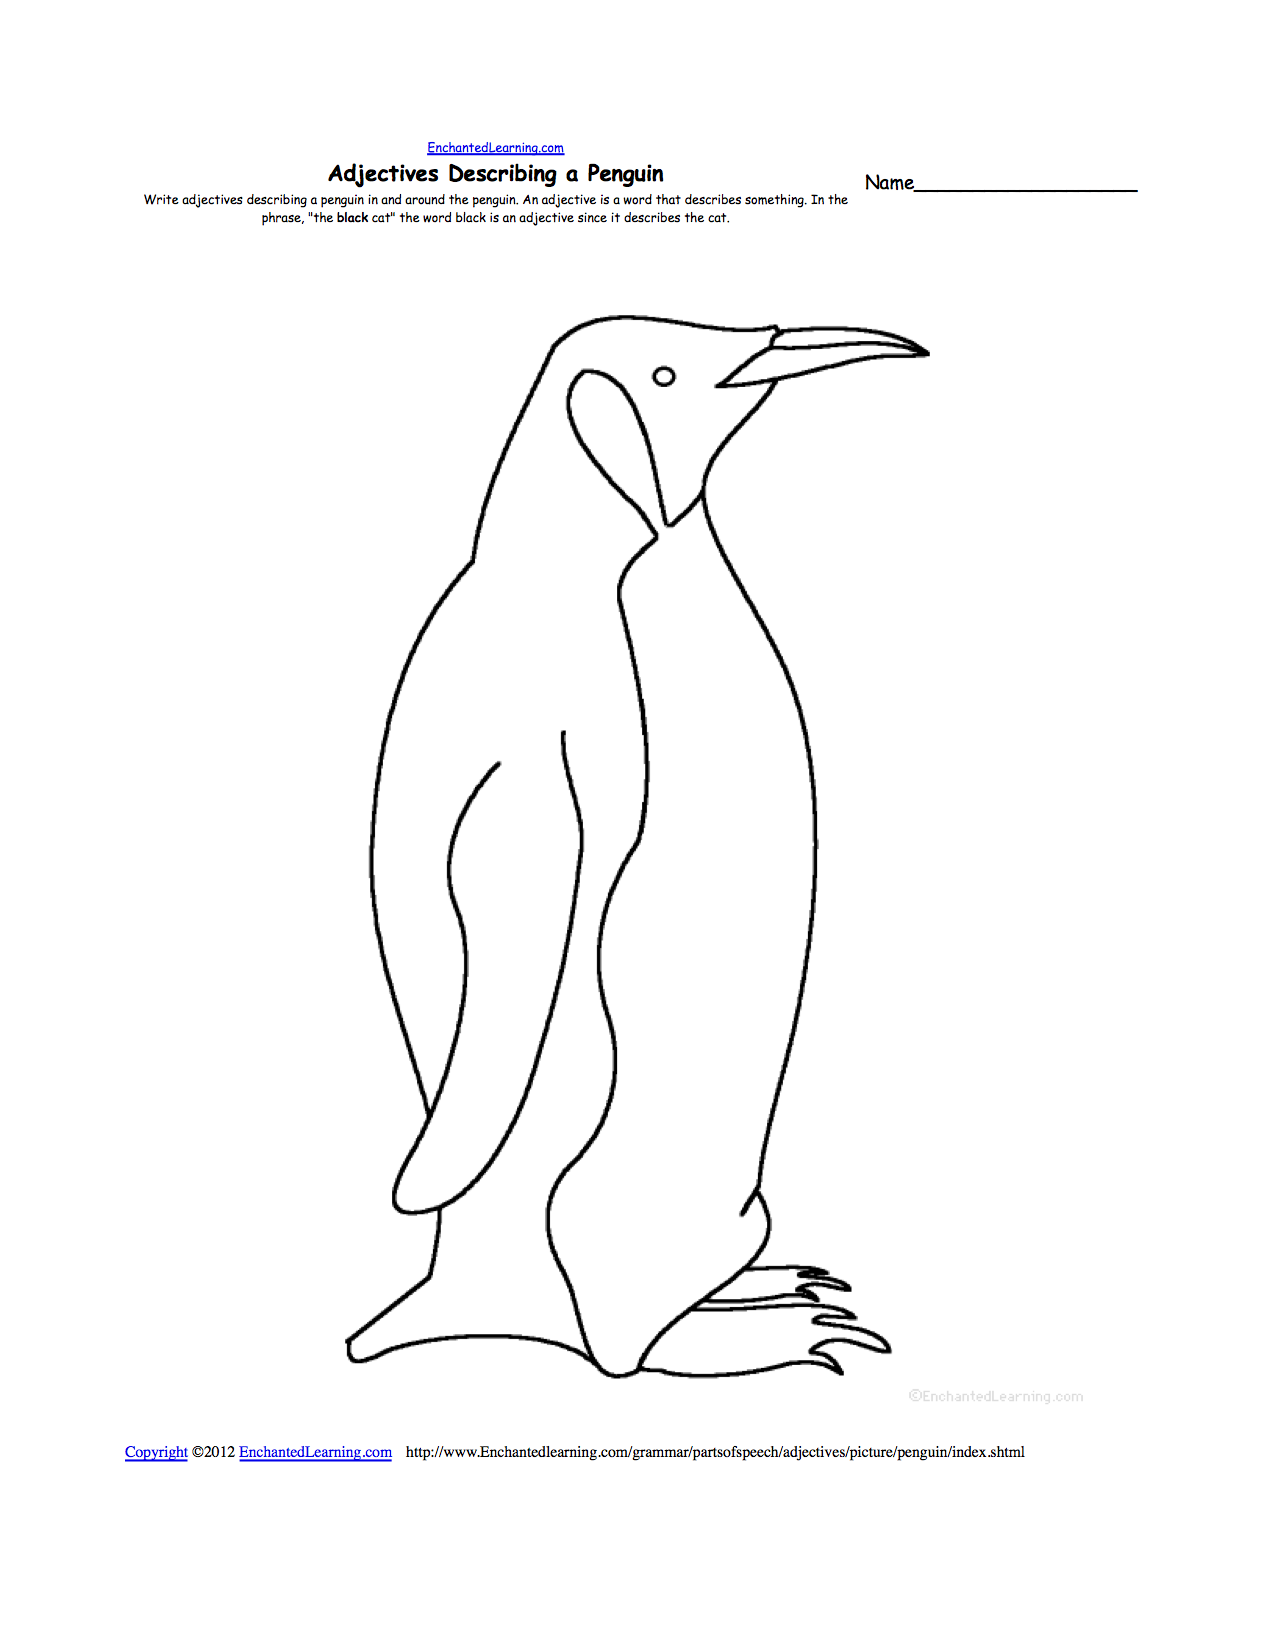 penguins at com adjectives describing a penguin